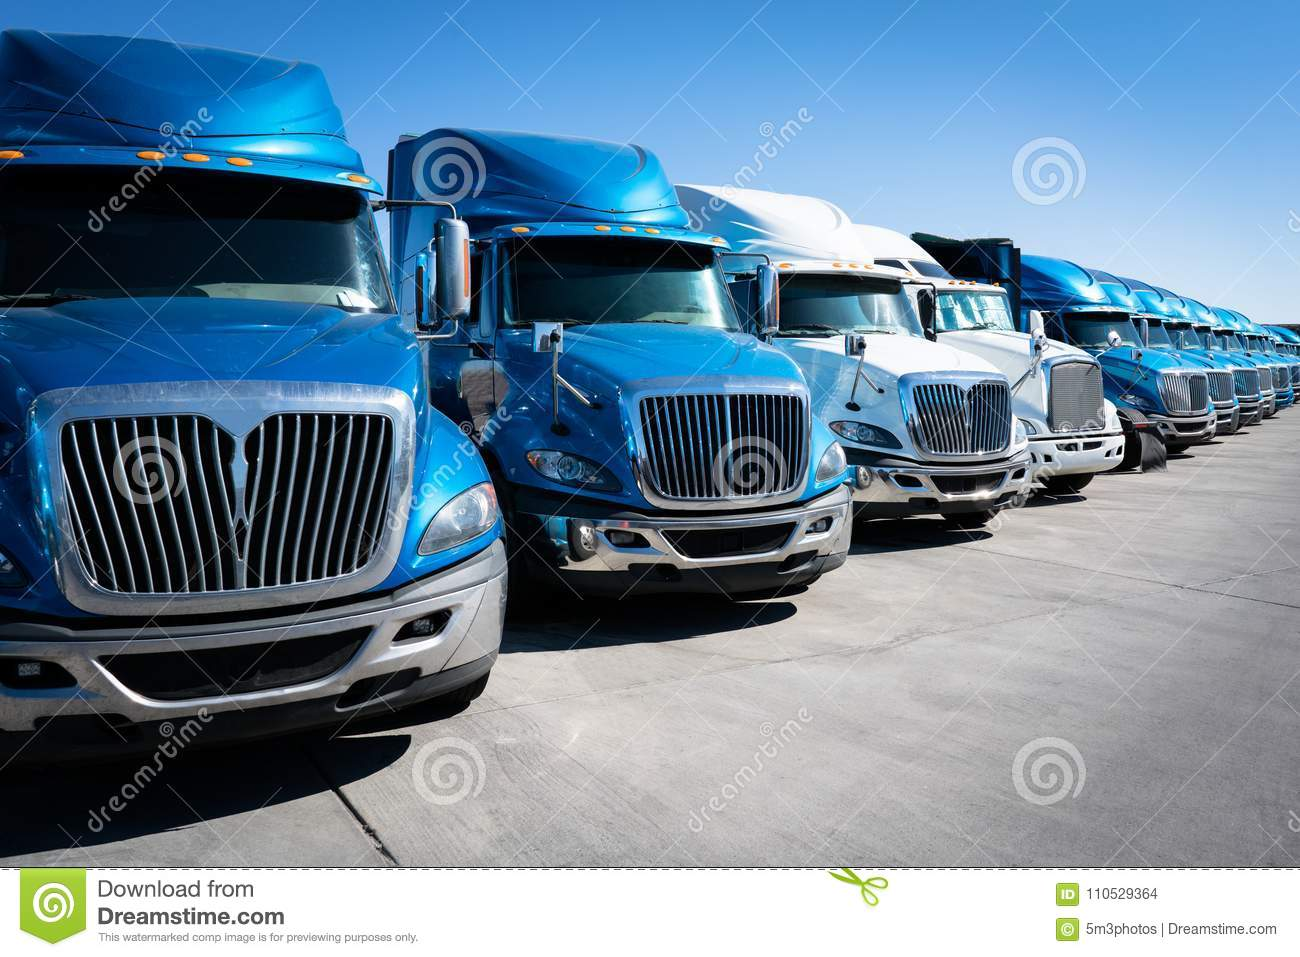 Fleet of semi truck 18 wheeler trucks